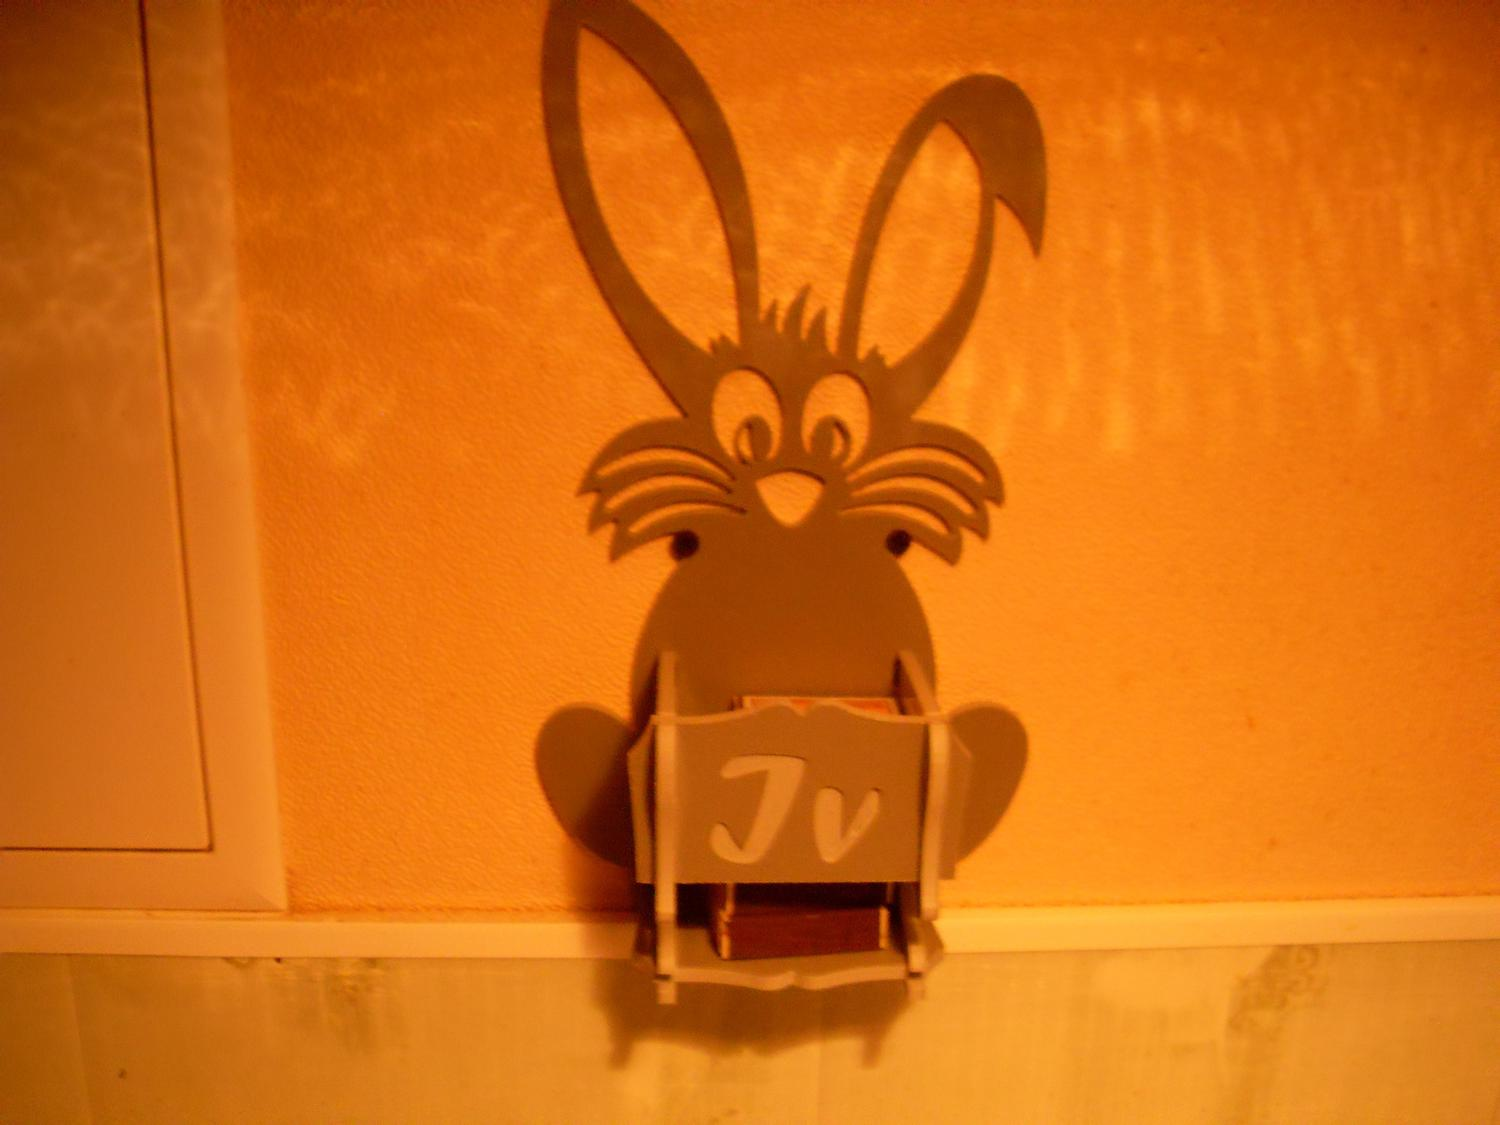 Laser Cut Bunny Match Holder Wall Box For Kitchen 4mm Free AI File